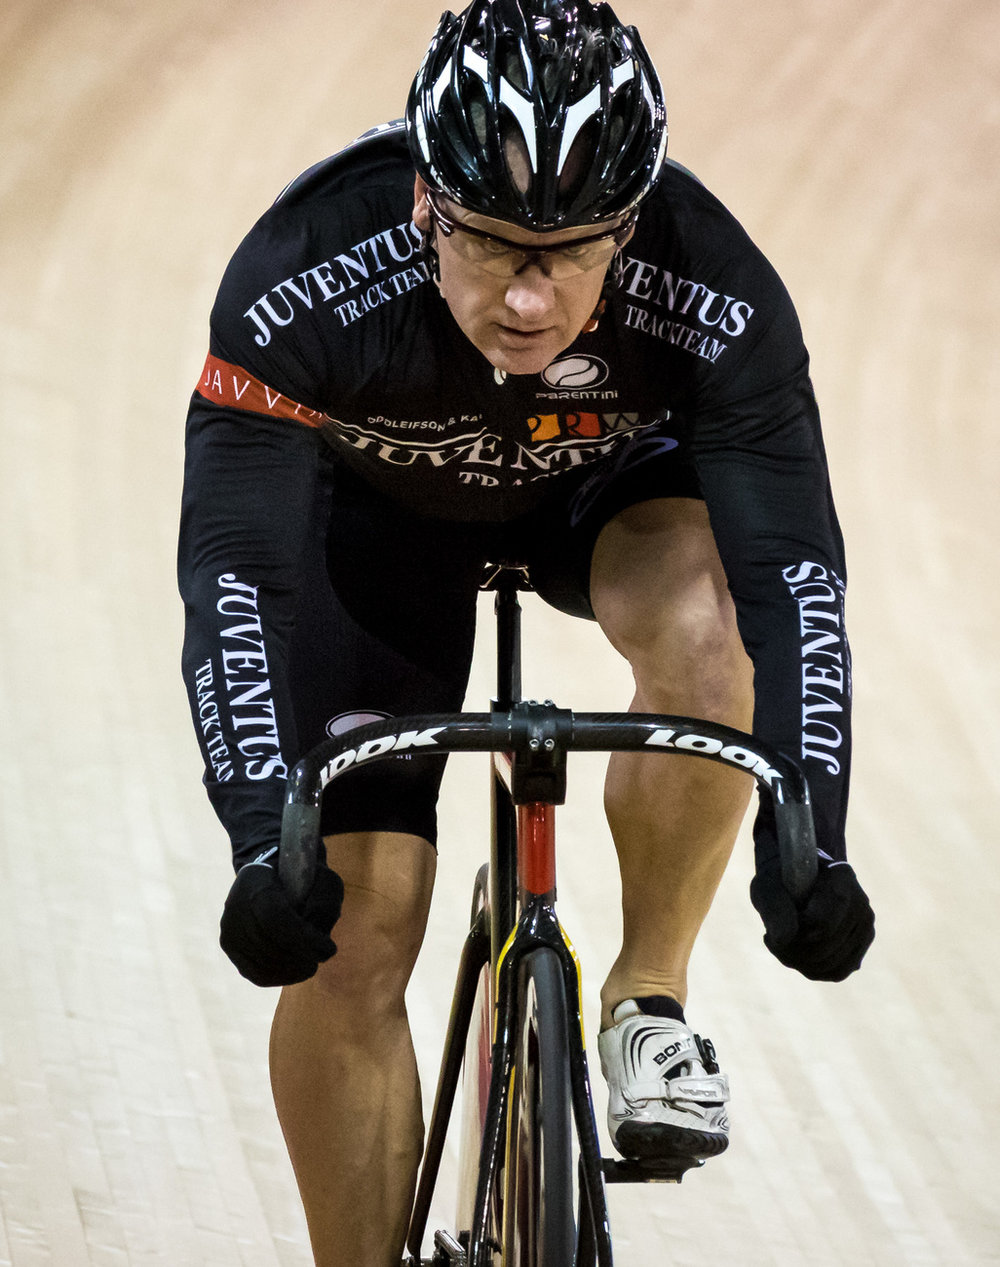 Dave Embury competing in Masters C at the 2015 National Track Cycling Championships -